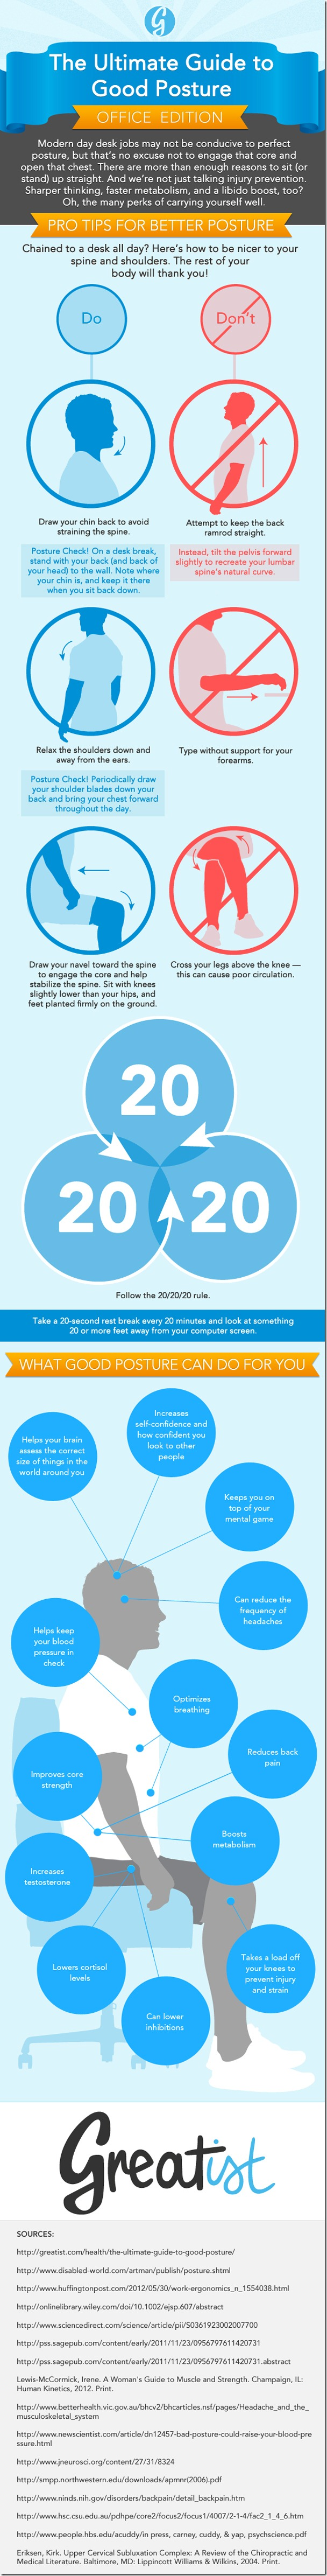 Posture-at-Work-Infographic